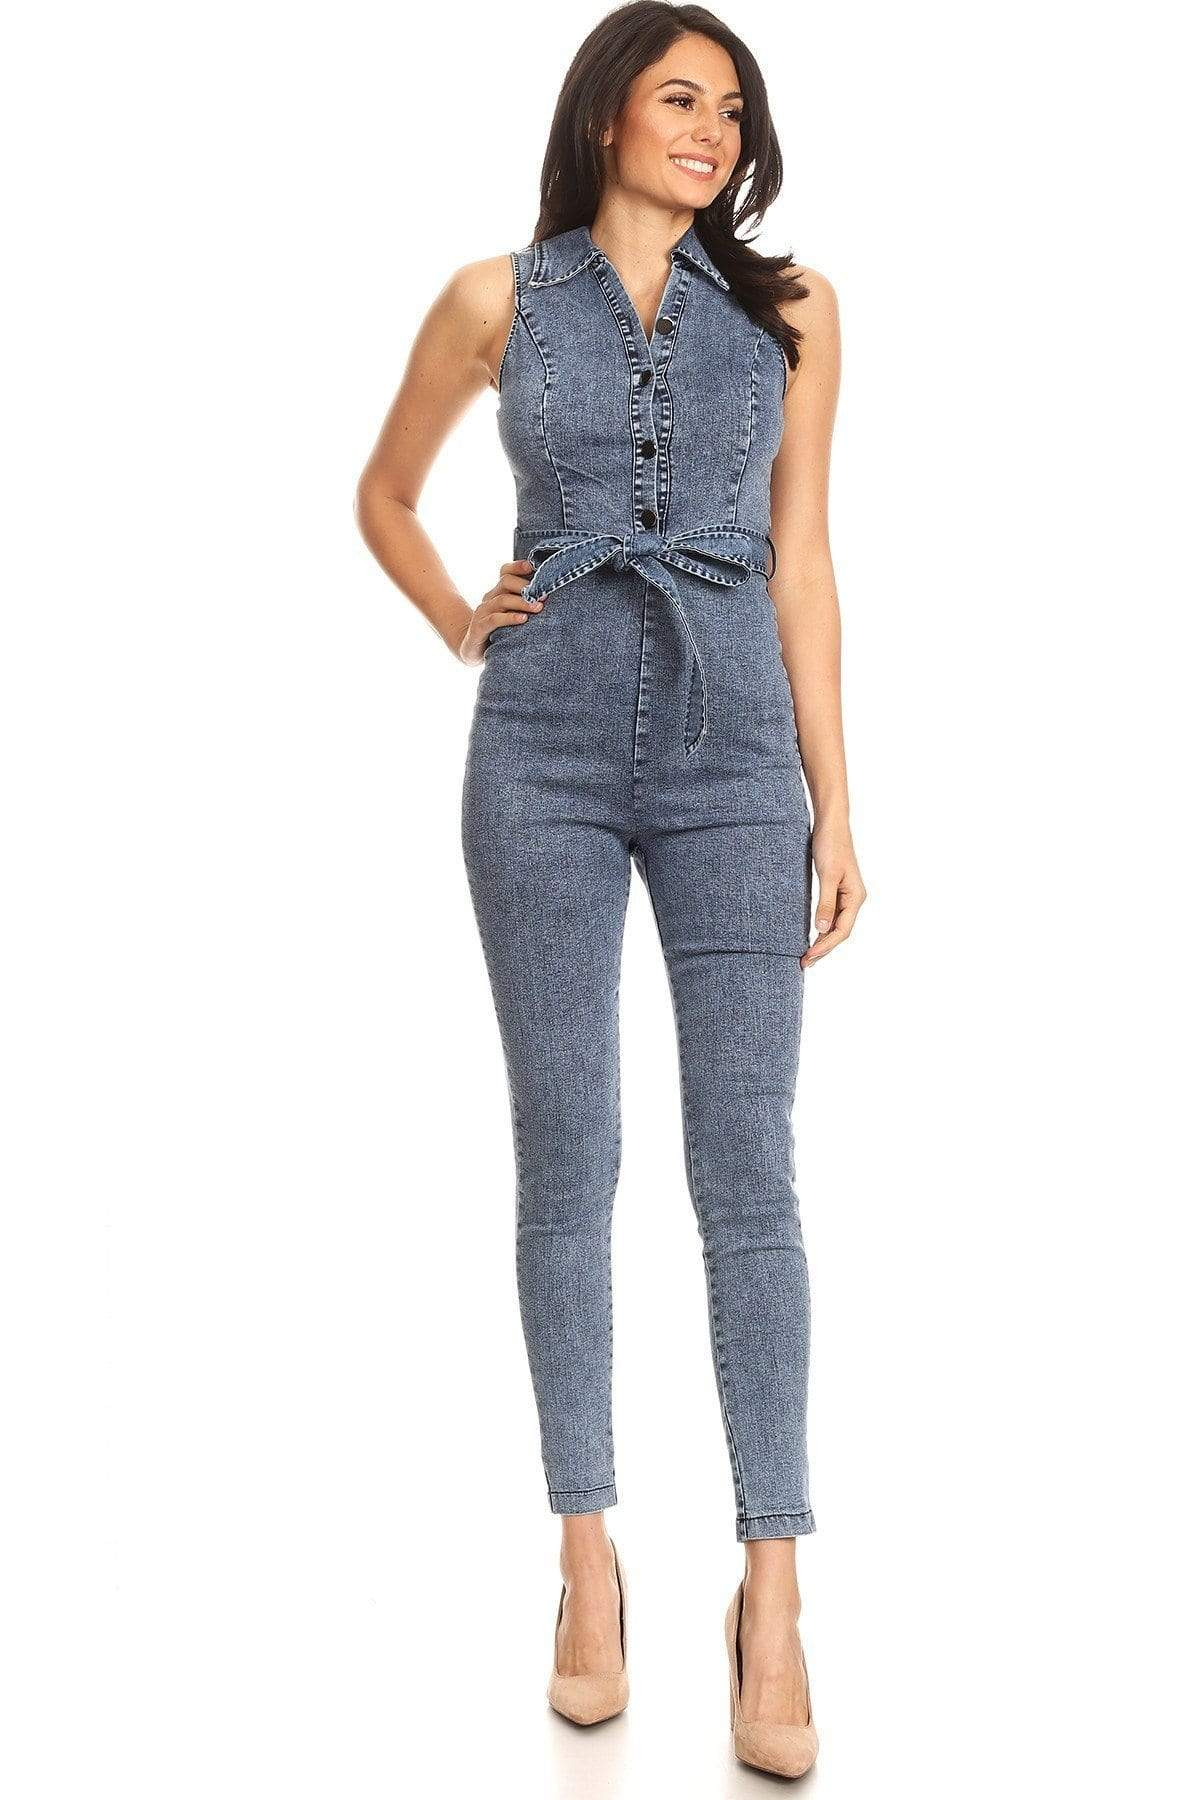 Fitted Denim Jumpsuit With Waist Tie, Button Down Detail, And Collar-Black Glitter Girl